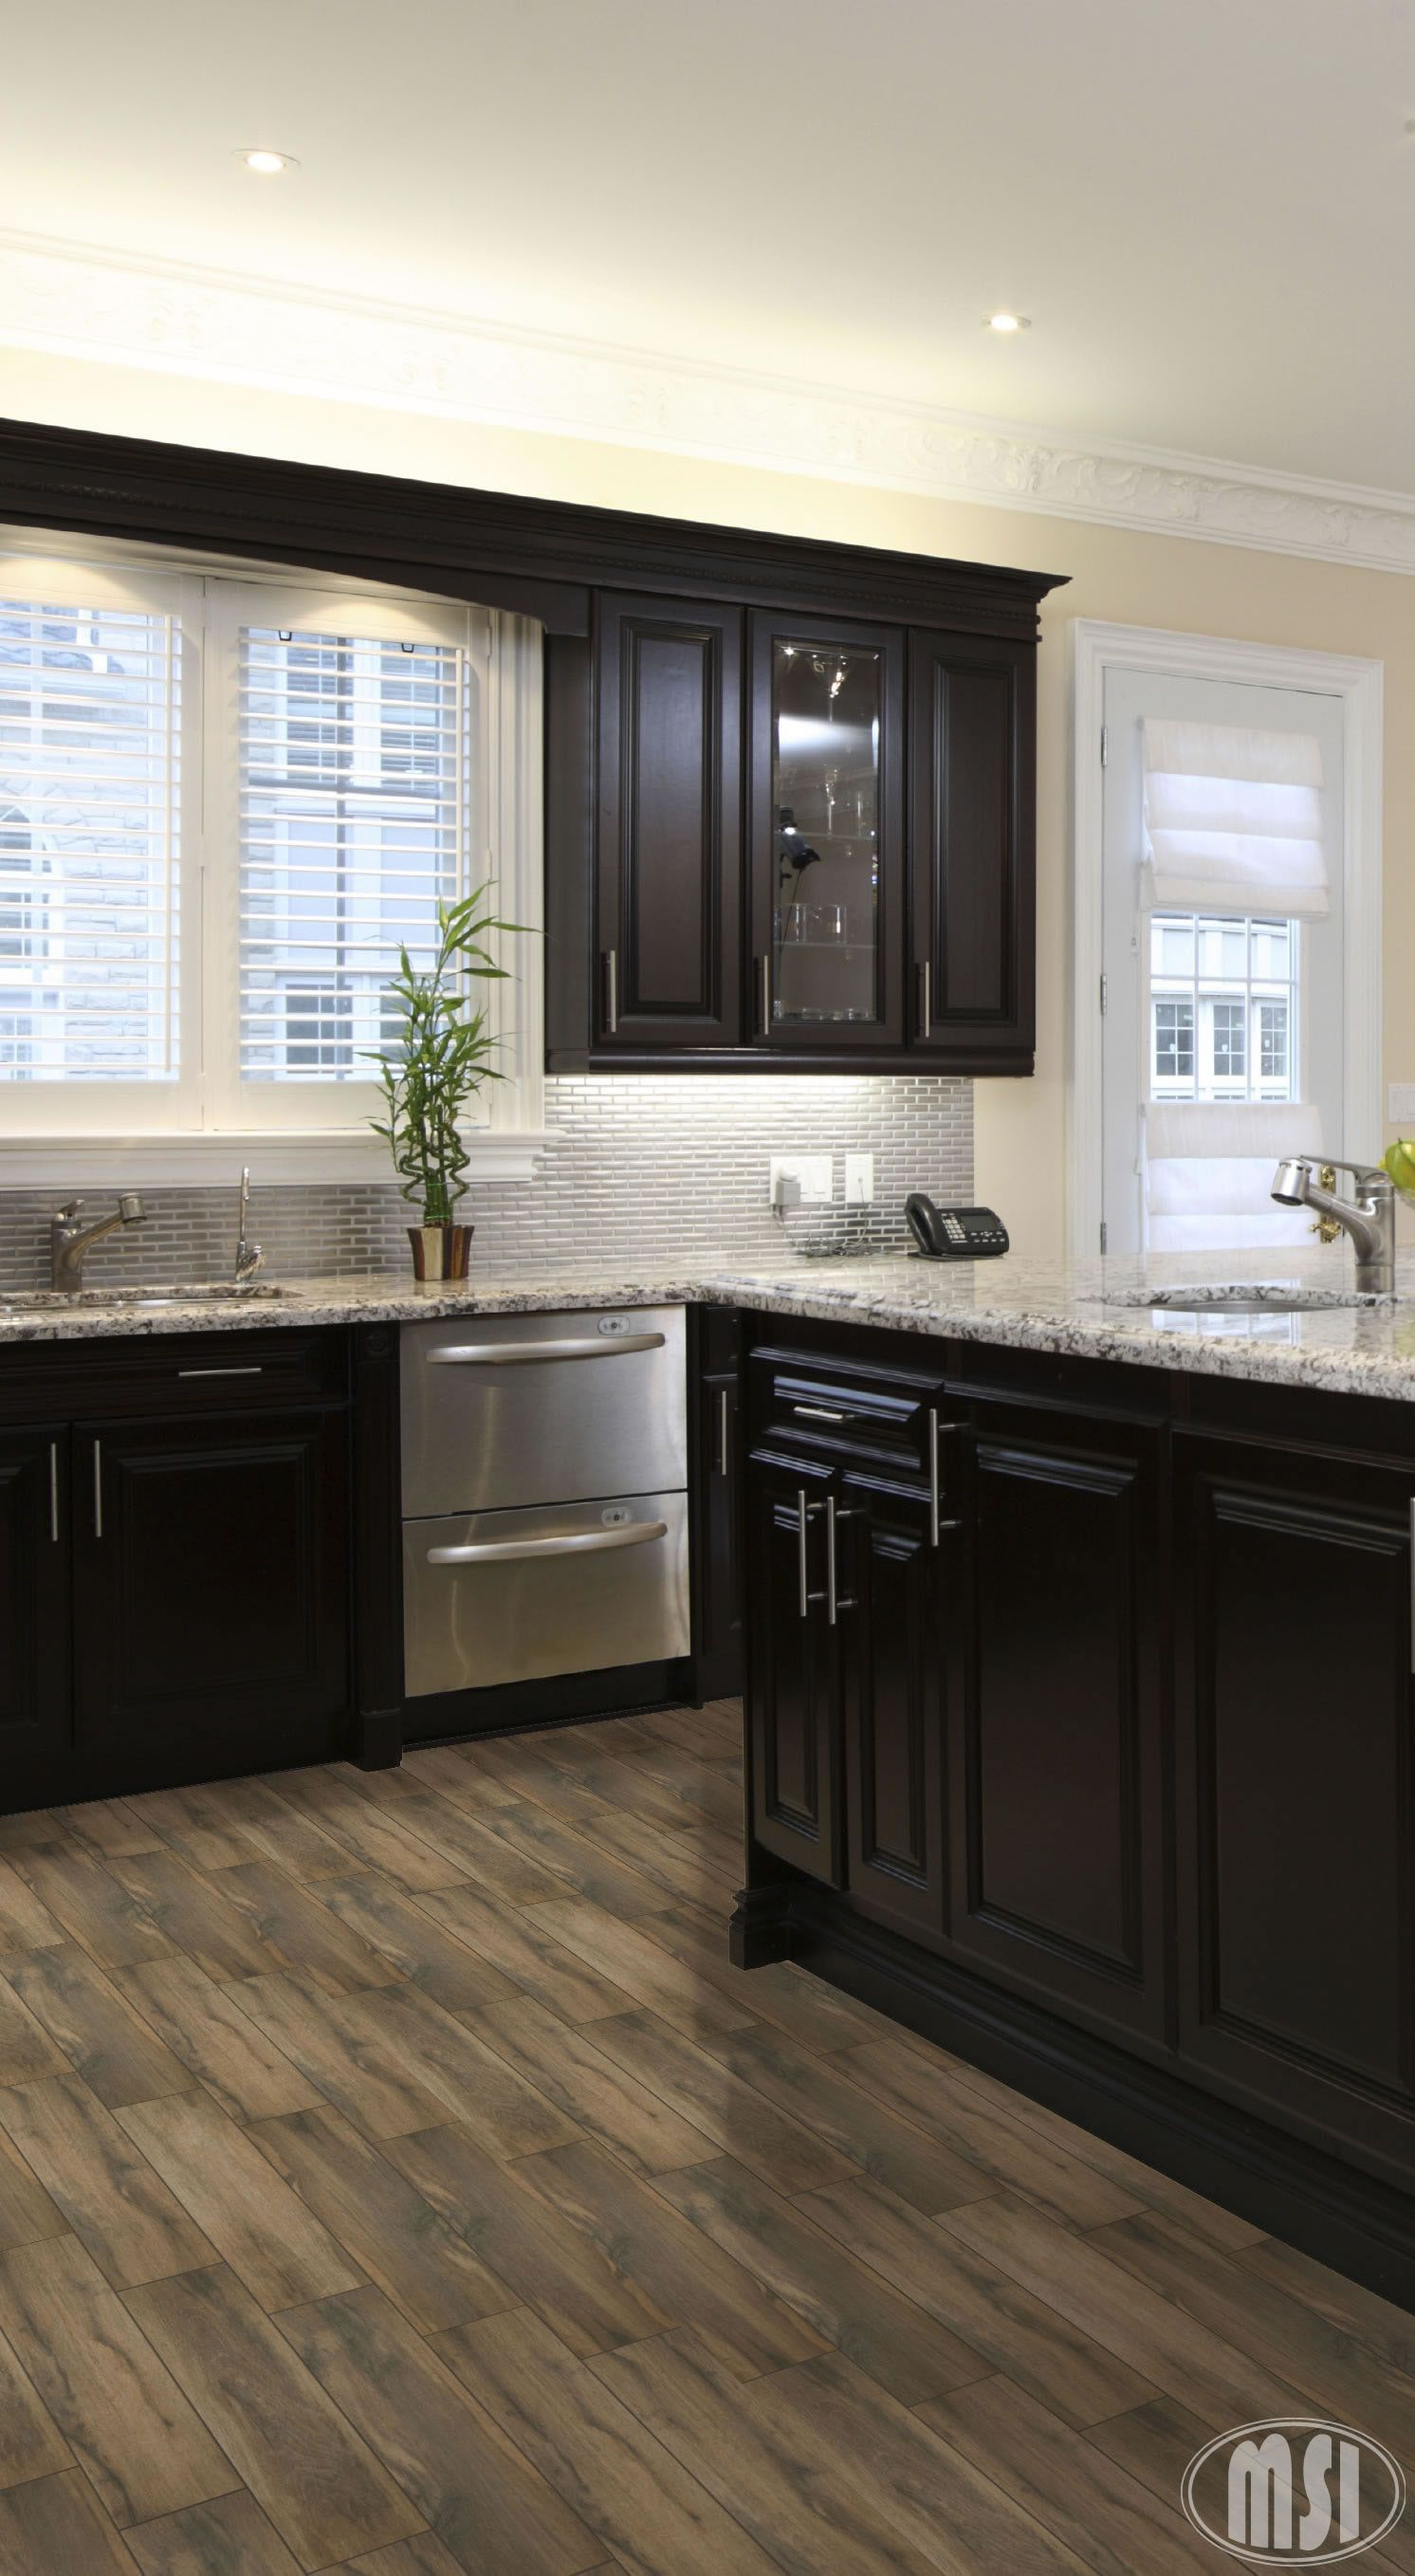 Best Of Farmhouse Kitchen Espresso Cabinets Home Remodeling